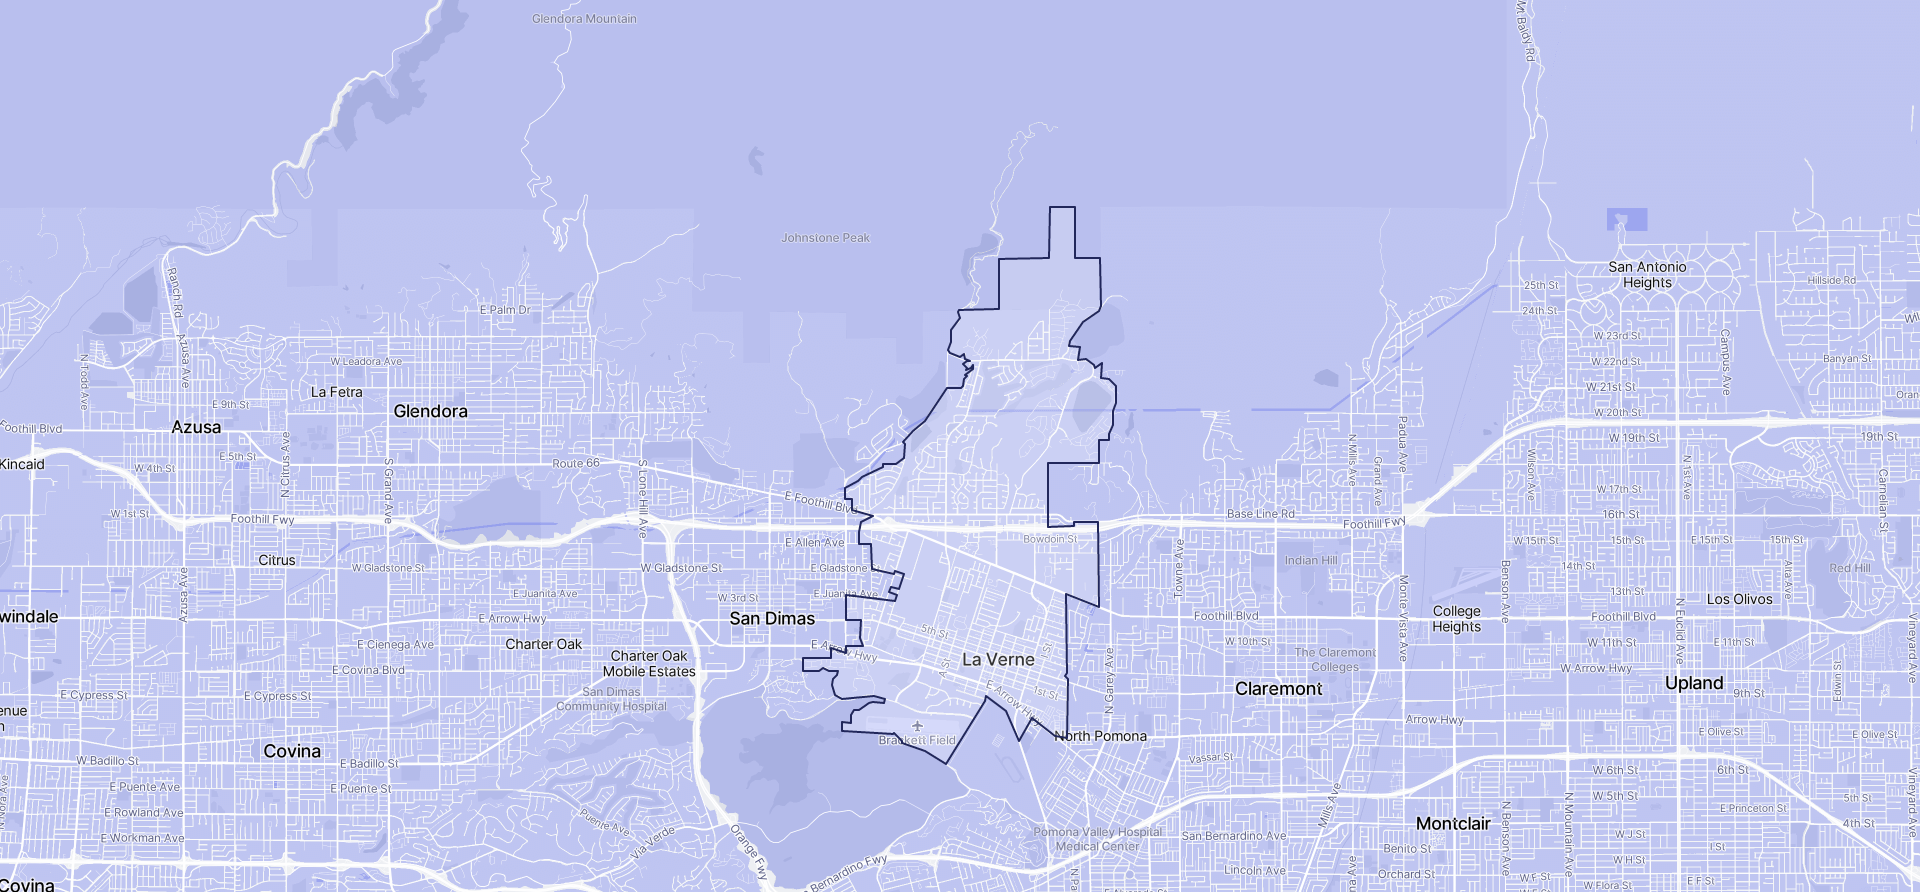 Image of La Verne boundaries on a map.